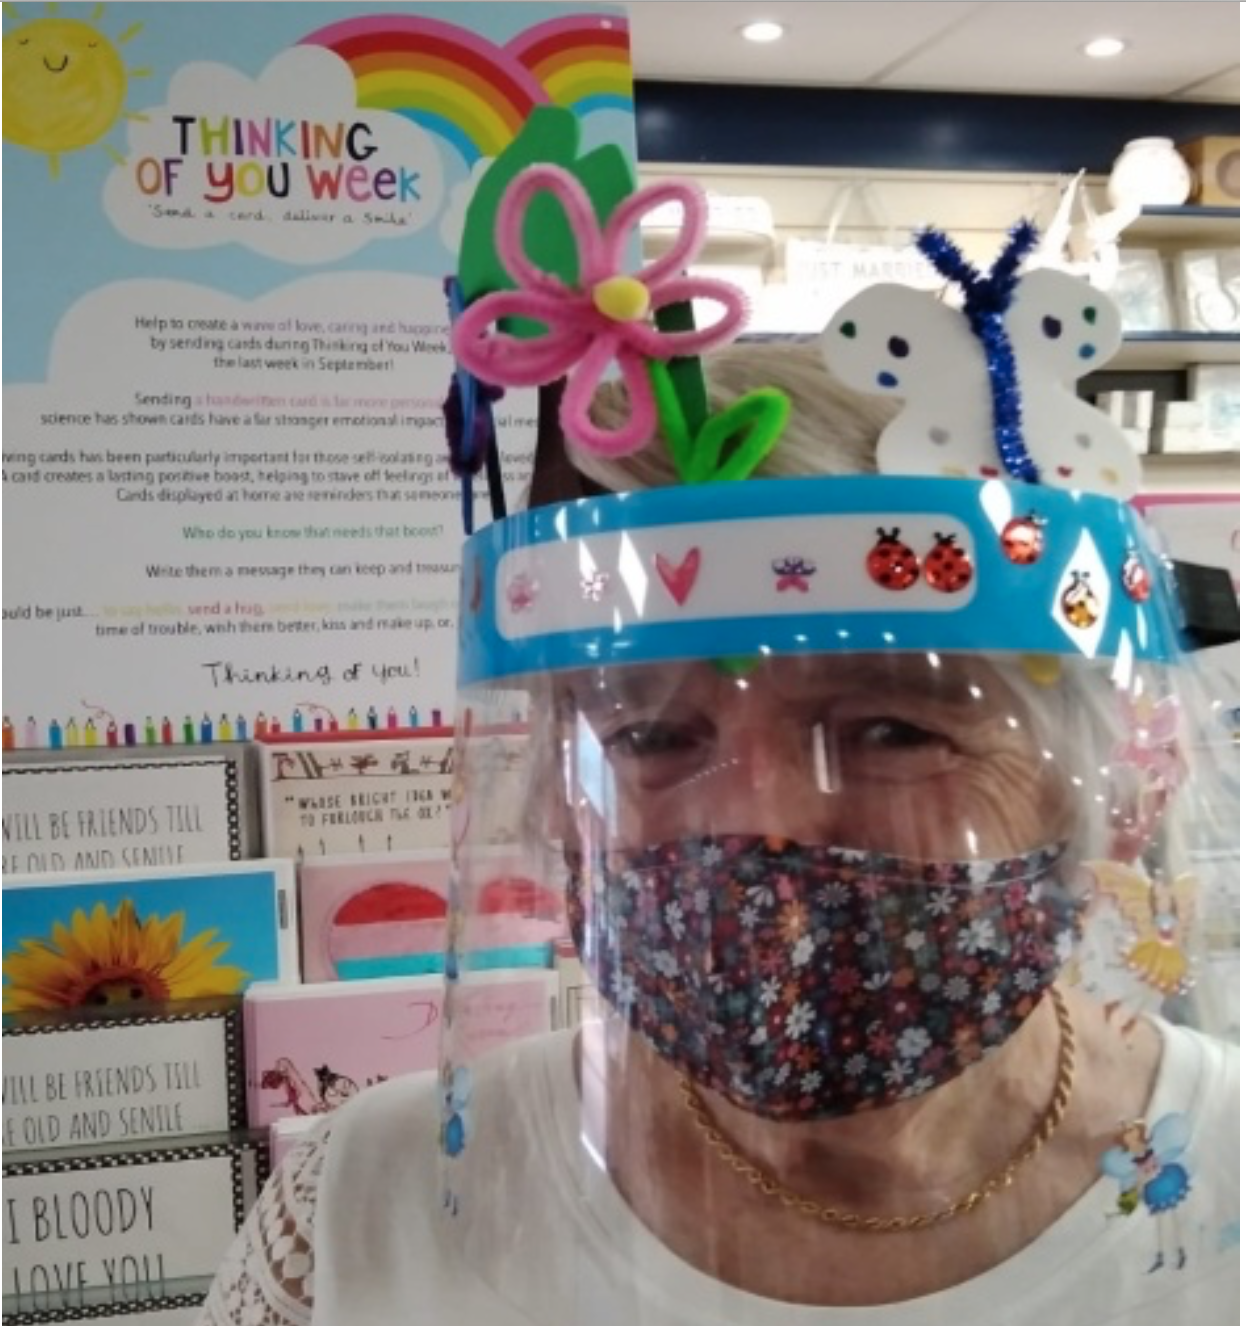 Above: House of Cards promoted Thinking of You Week instore as well as celebrating the event with its Pimp My Visor competition for its staff, with Pat Hadfield of Thatcham among those who entered.